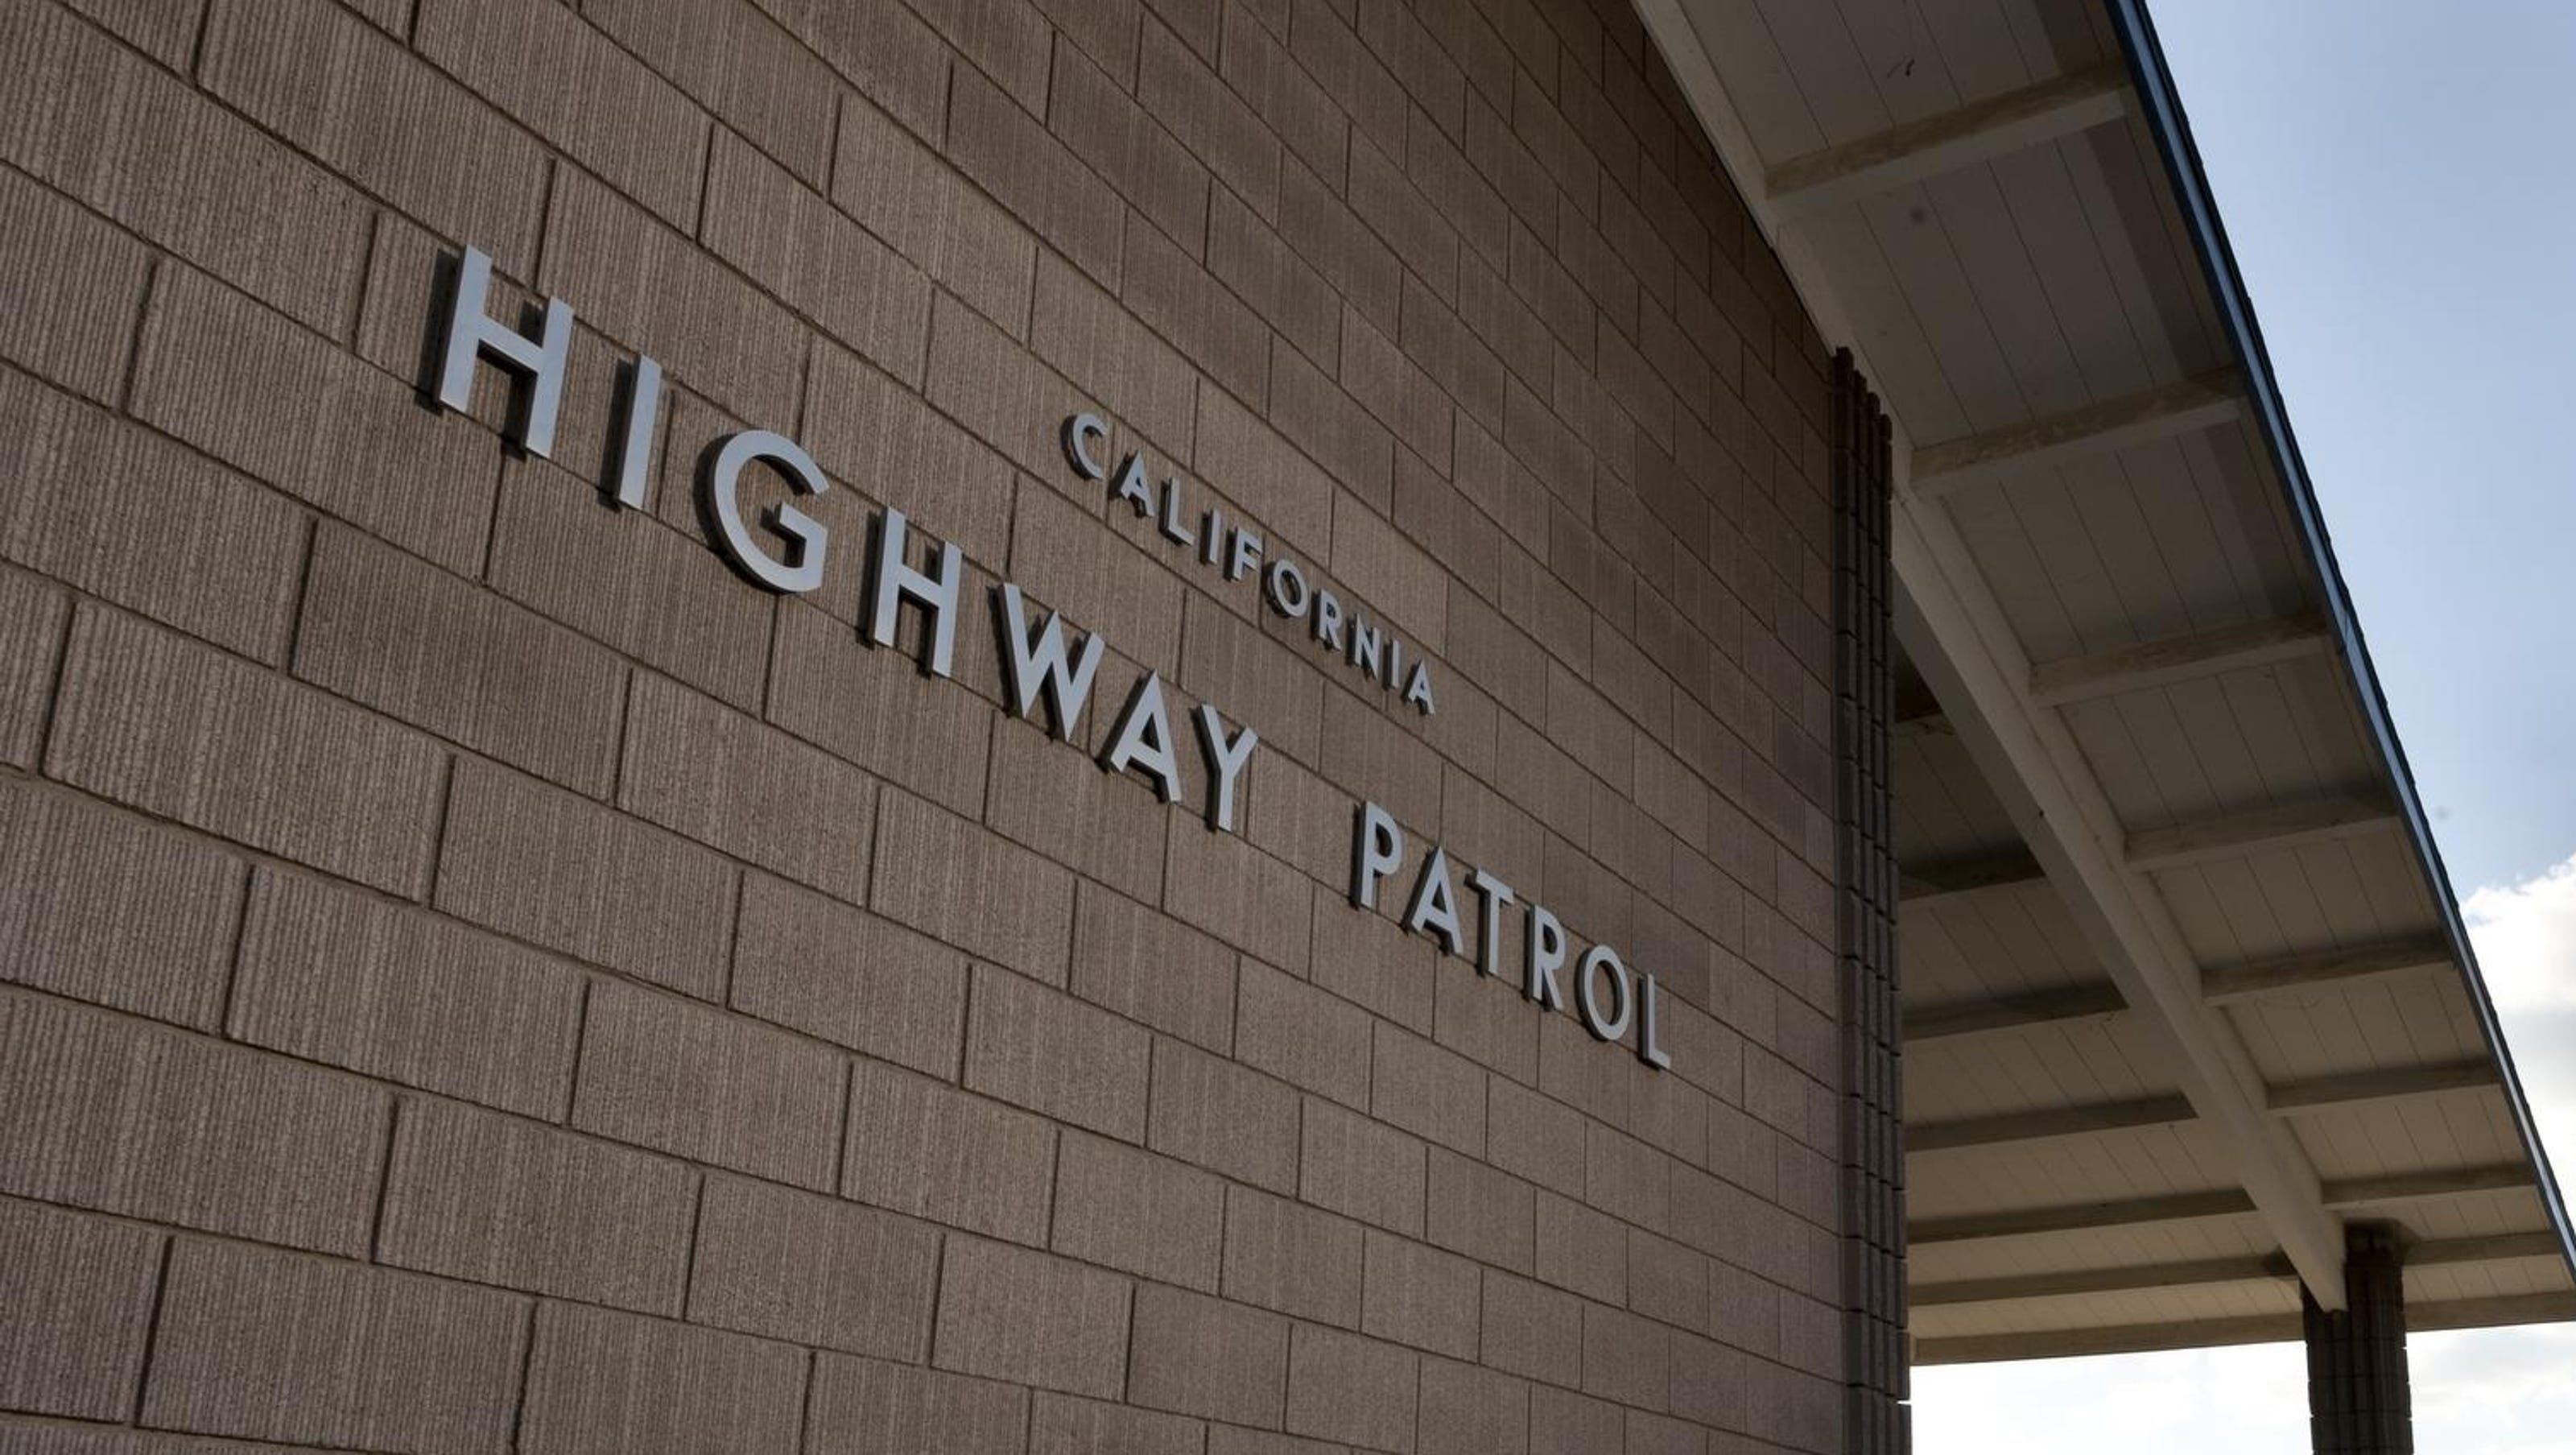 tulare county singles Tulare county man killed in single-vehicle crash california highway patrol officers are investigating what may have led to the death of an orosi man who crashed his vehicle into an orchard.